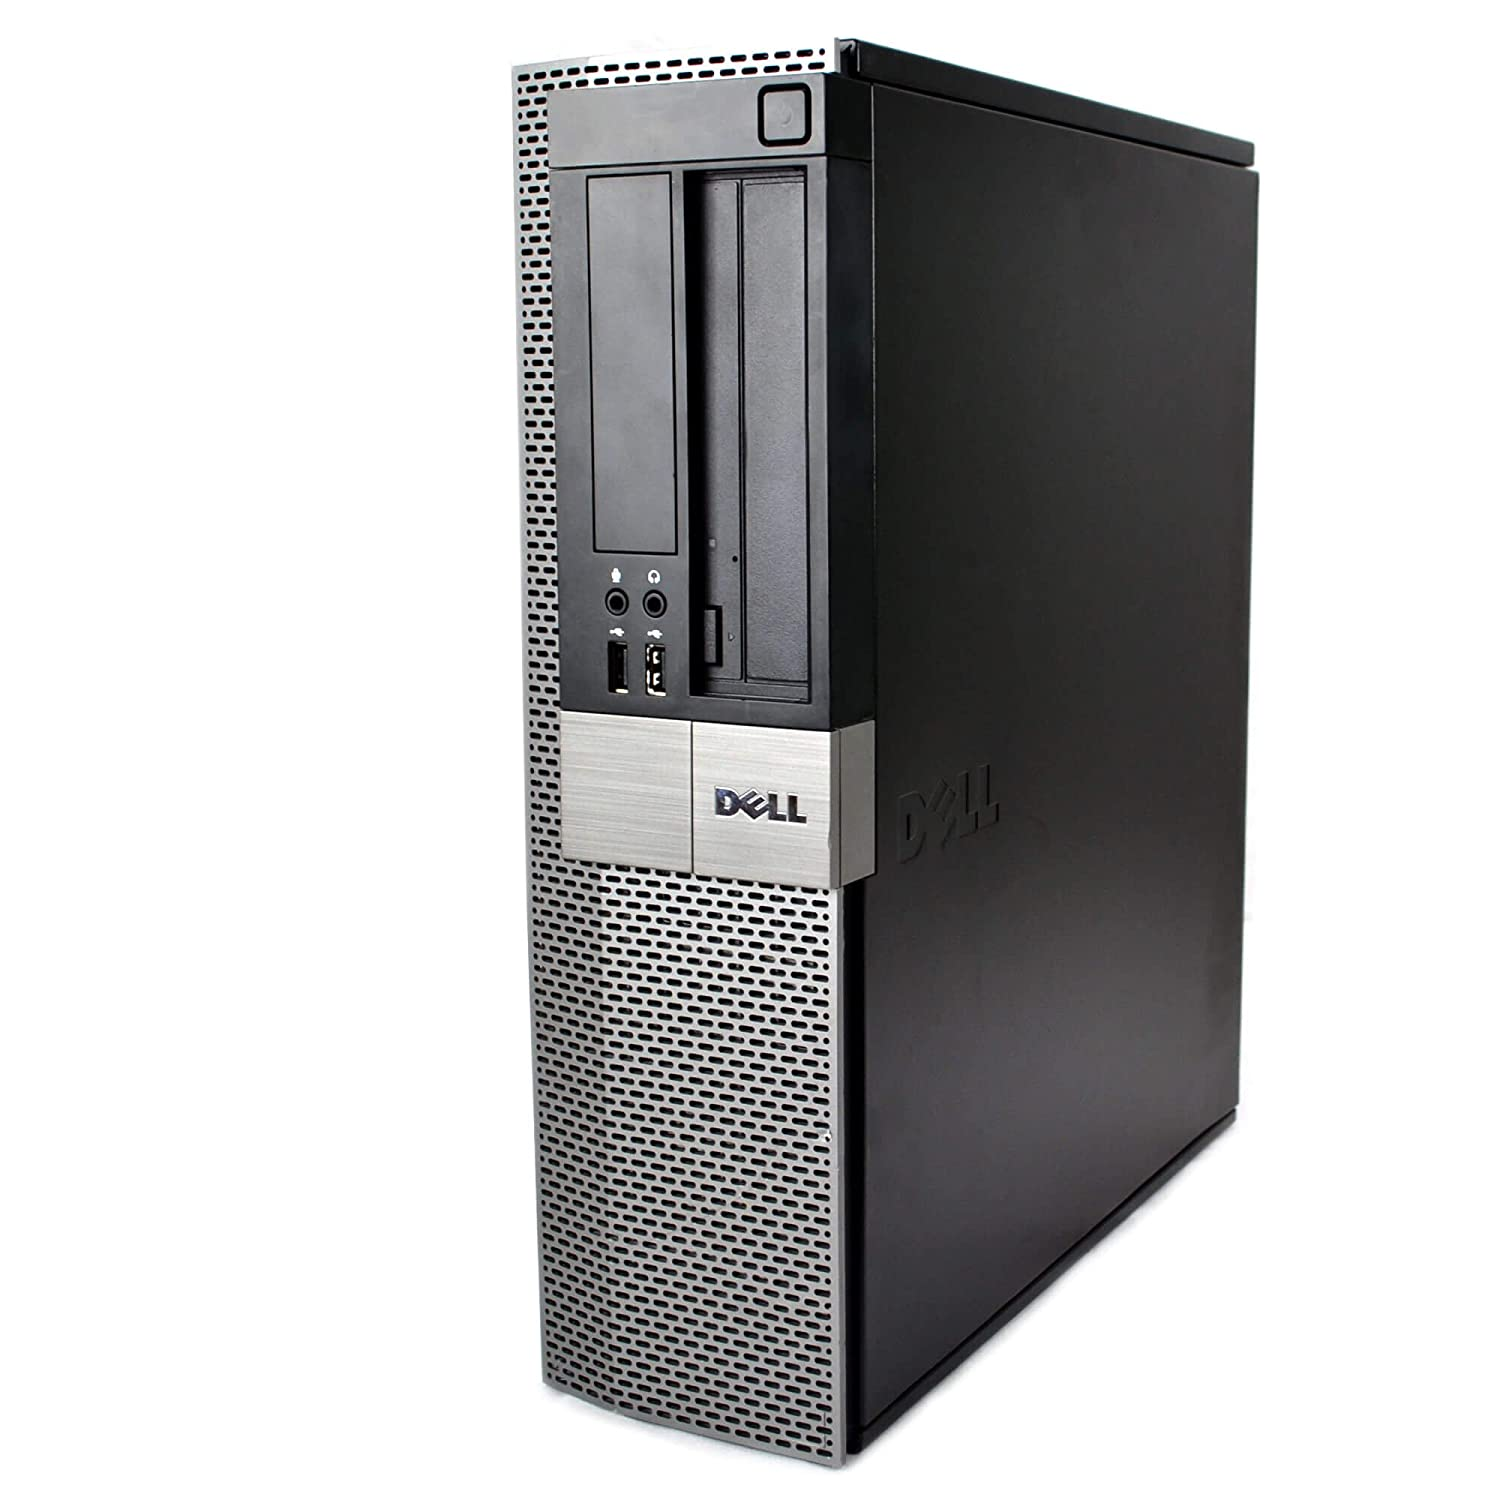 Amazon.com  Dell Optiplex 980 Desktop Computer, i5-650 3.2GHz, 8GB, 1TB  DVD, Windows 10 Pro (Certified Refurbished)  Computers   Accessories e0b33ea9f36e